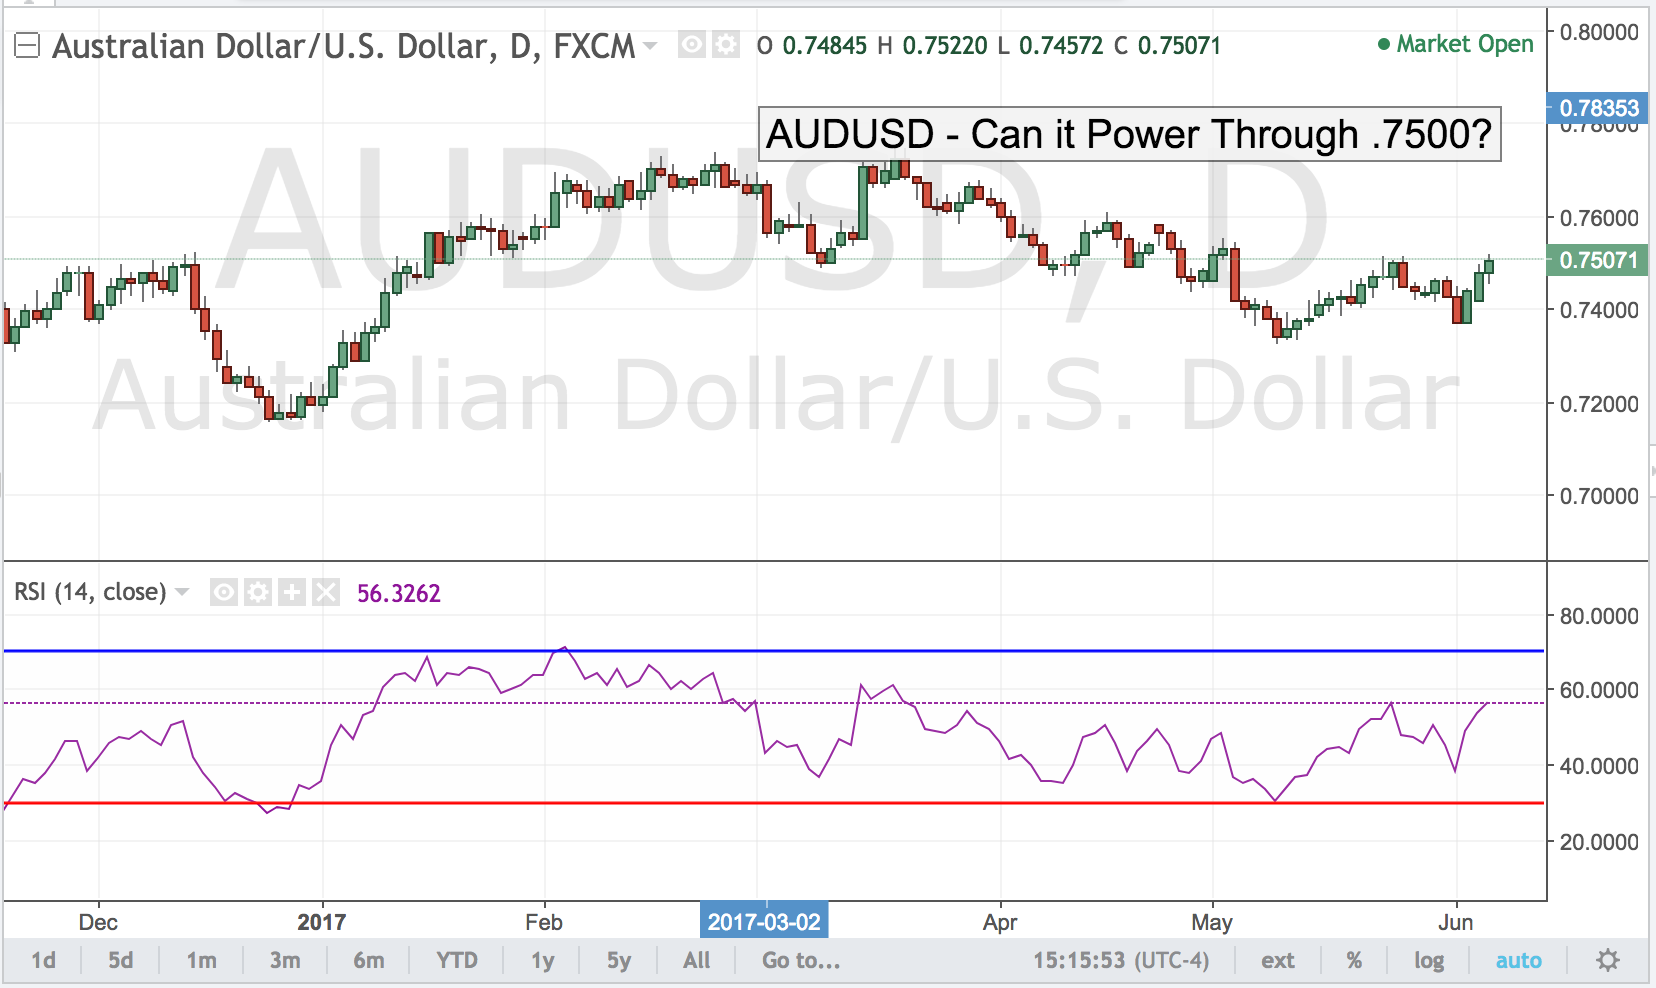 AUDUSD – Can It Power Through .7500?